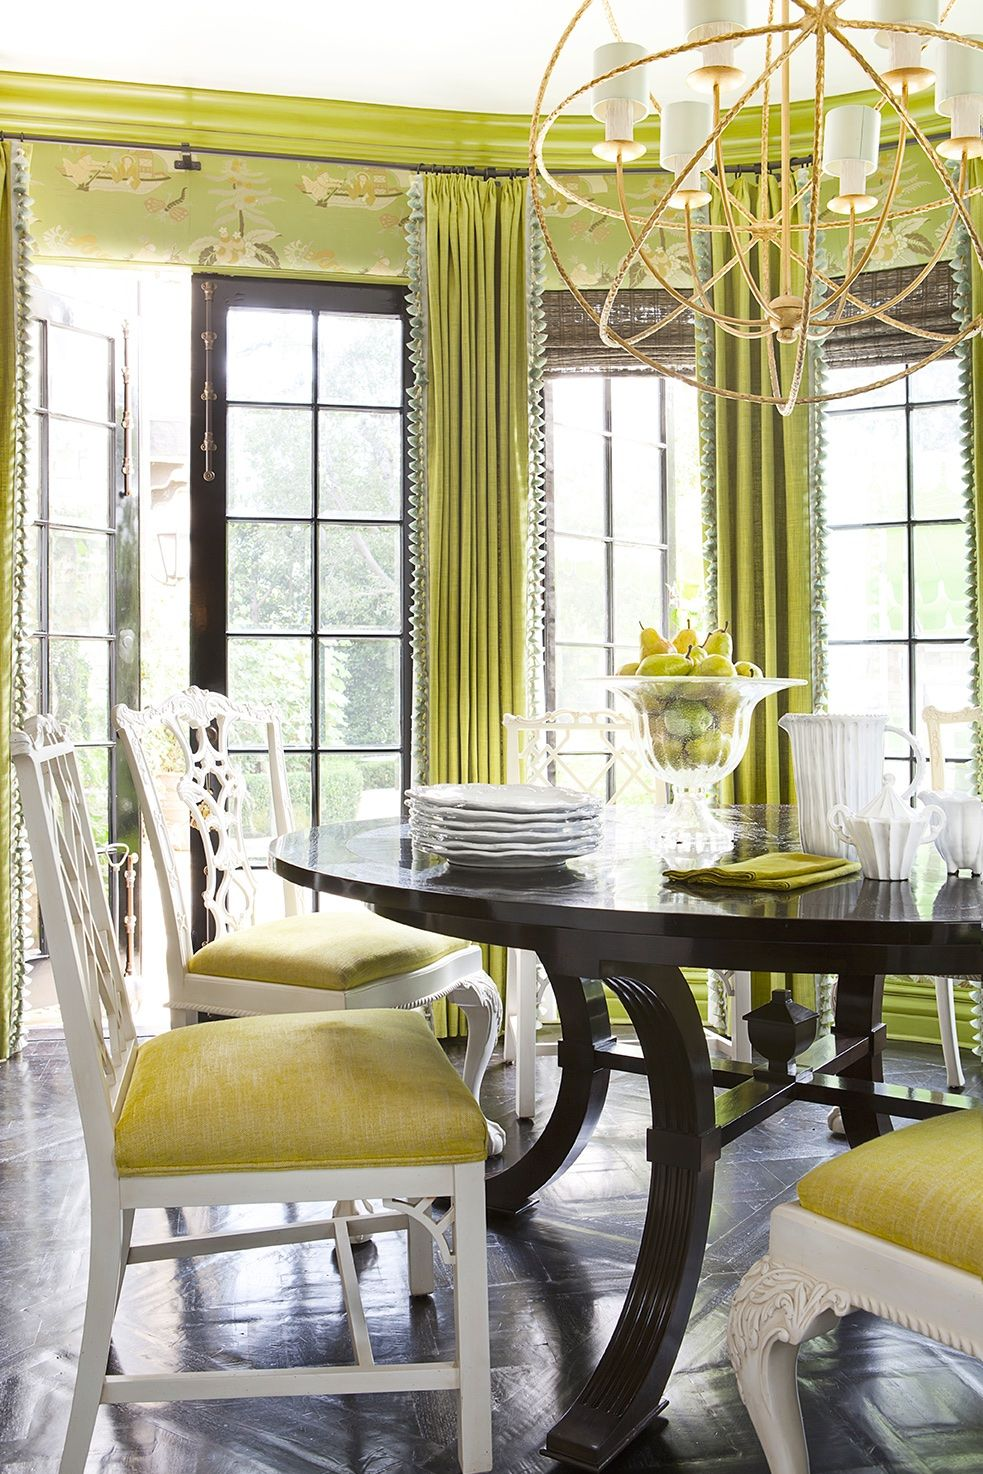 30 Room Colors For A Vibrant Home Paint Colors For Bright Interior